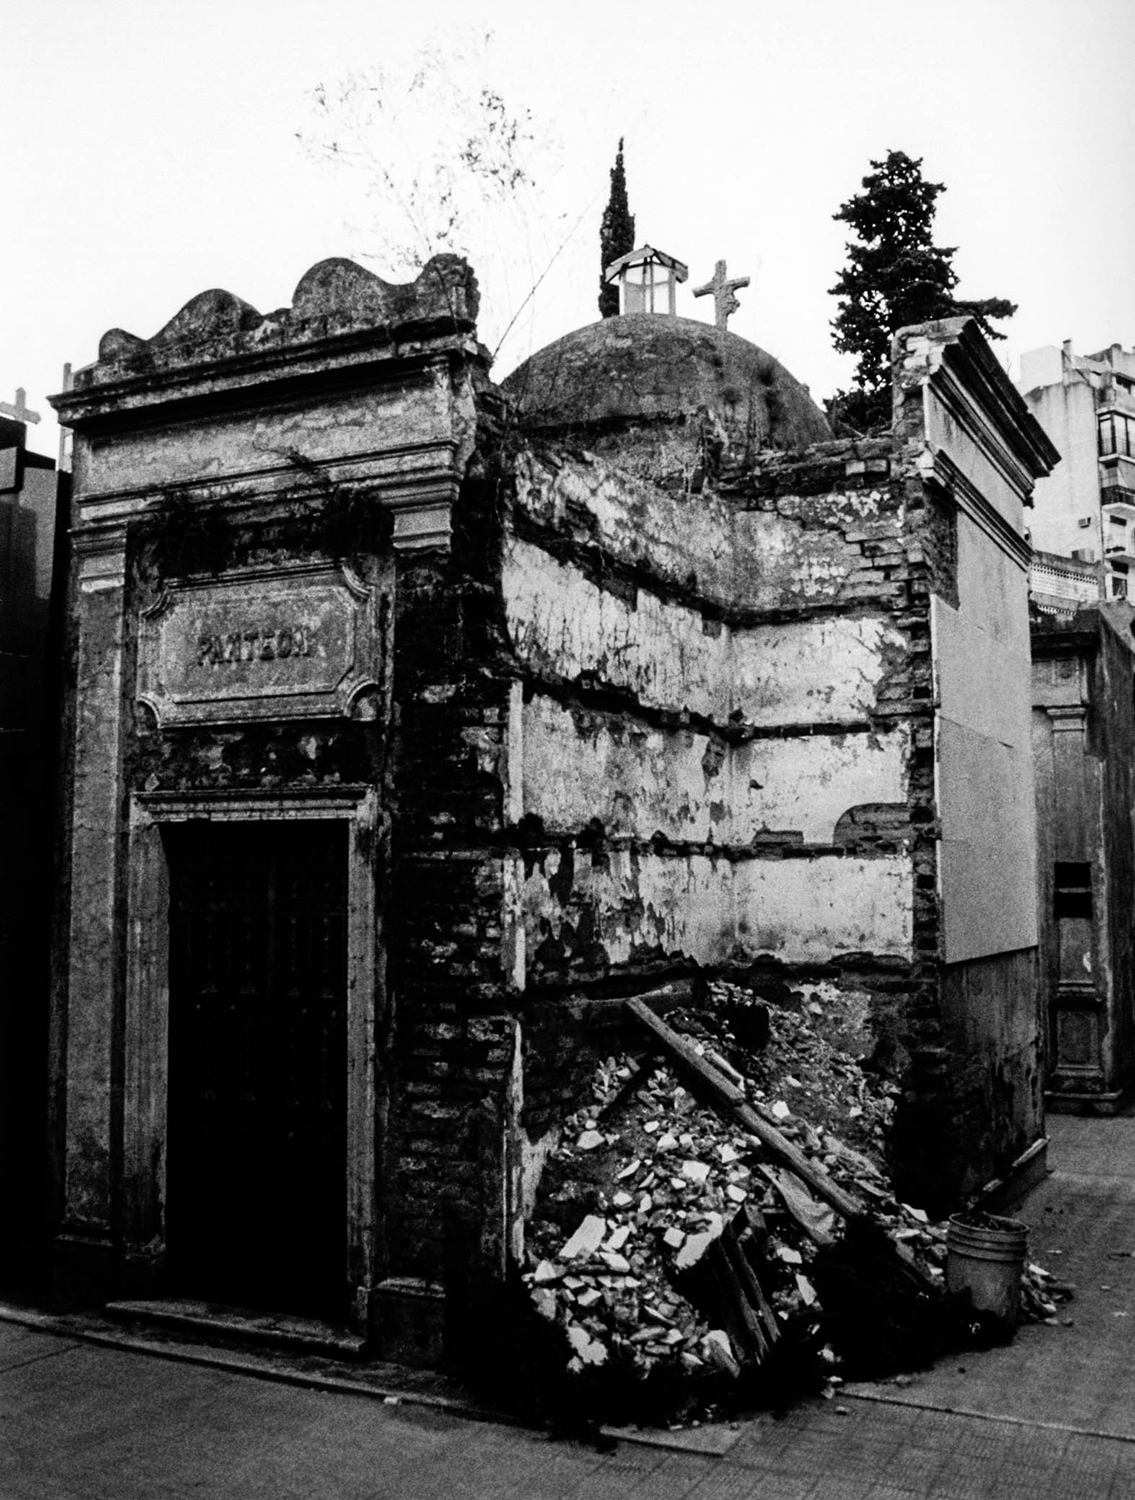 <p>Neglect takes its toll on a mausoleum in the Recoleta Cemetery. <br /></p>